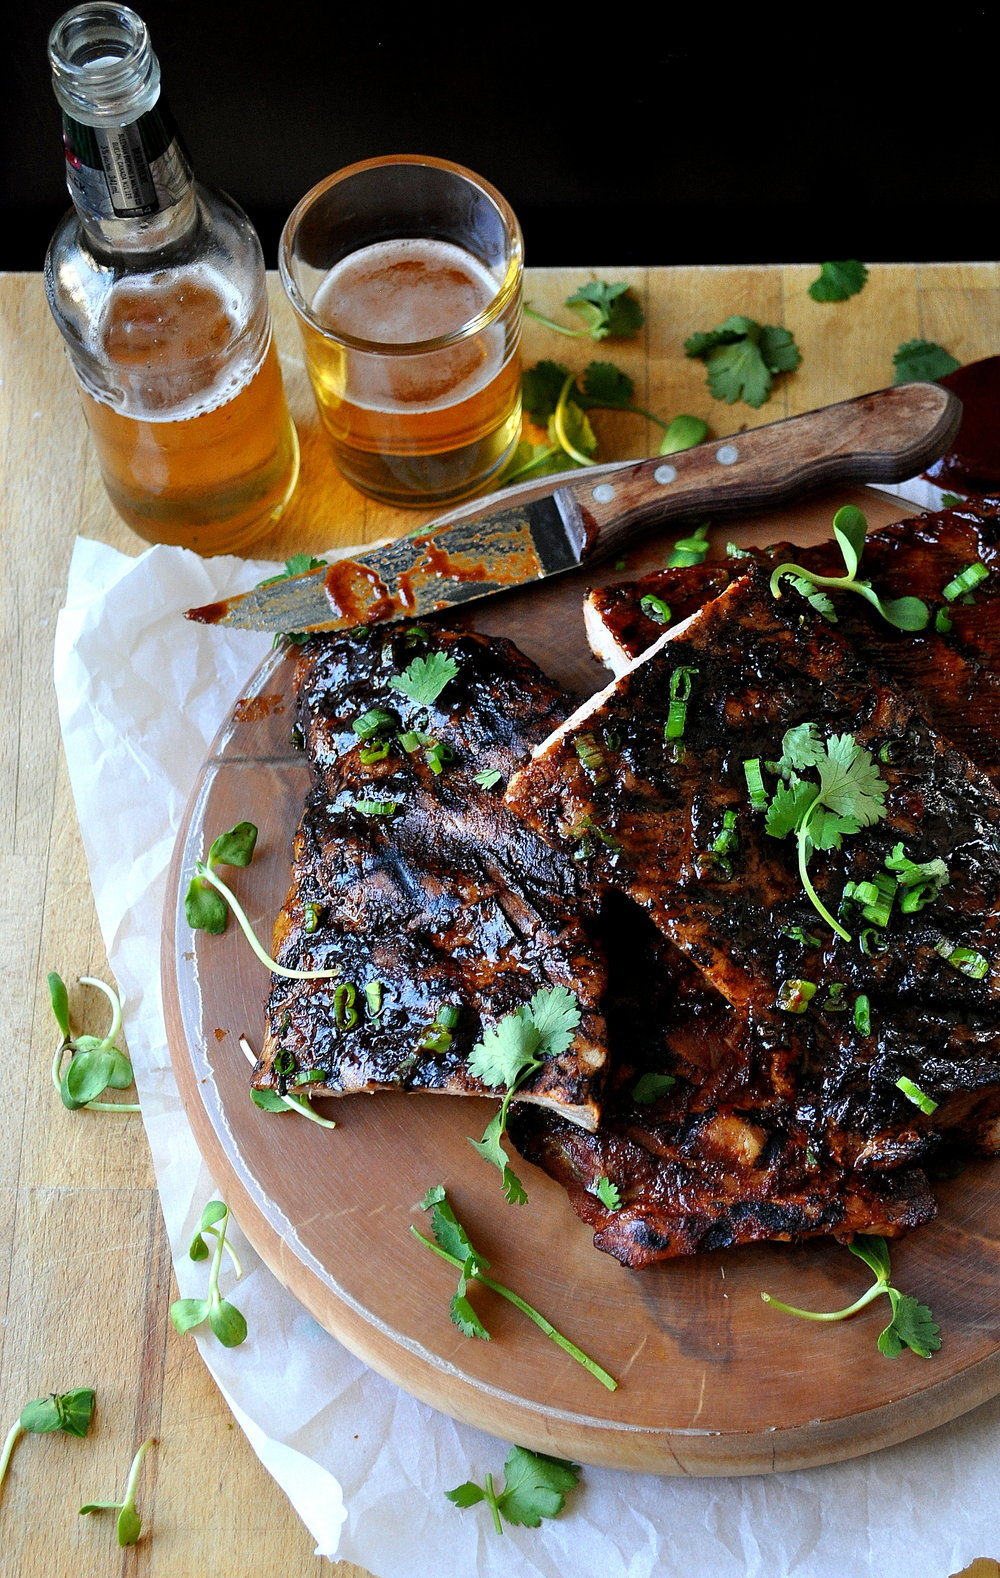 Sticky Ribs with Homemade BBQ Sauce